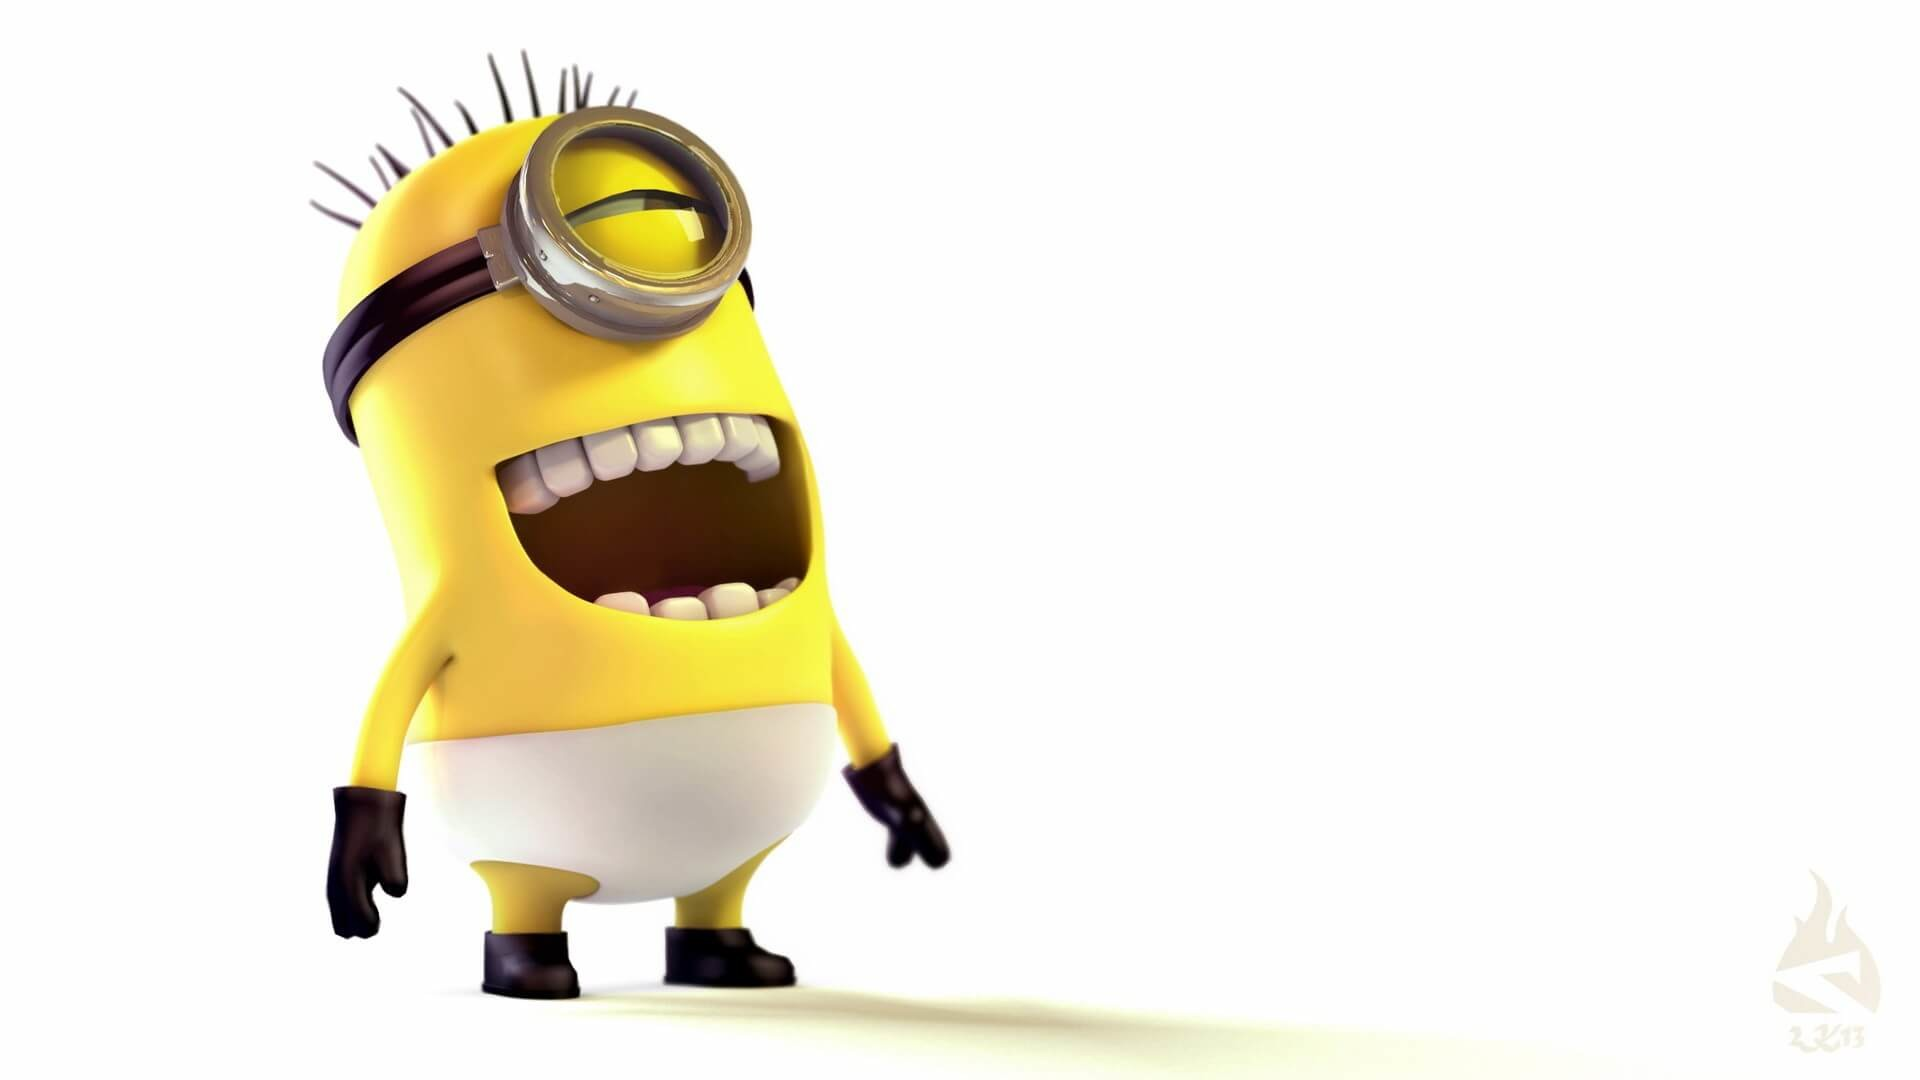 1920x1080 Minions Wallpapers for iPad